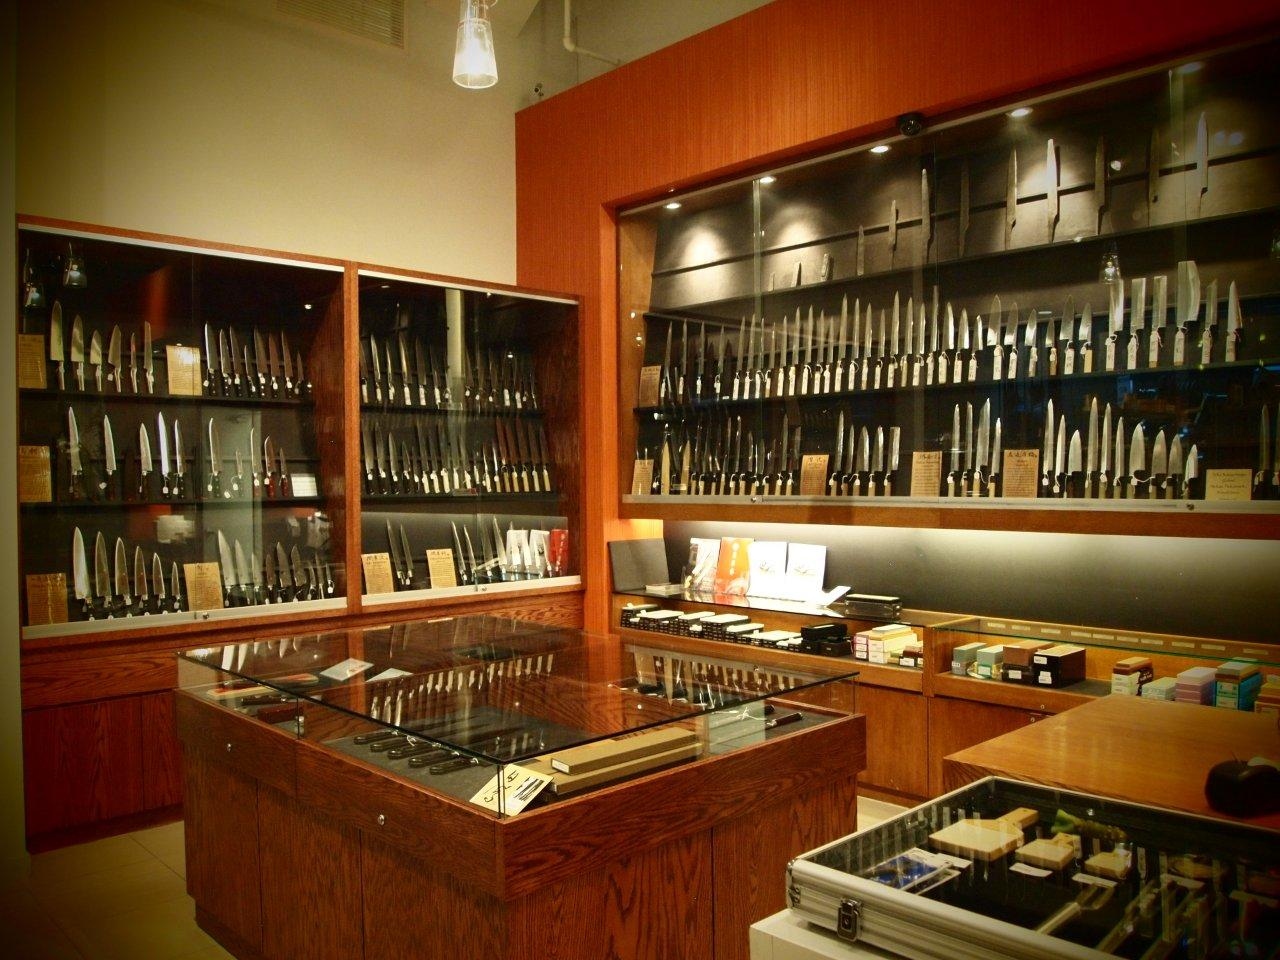 Visit MTC Kitchen Store in Manhattan